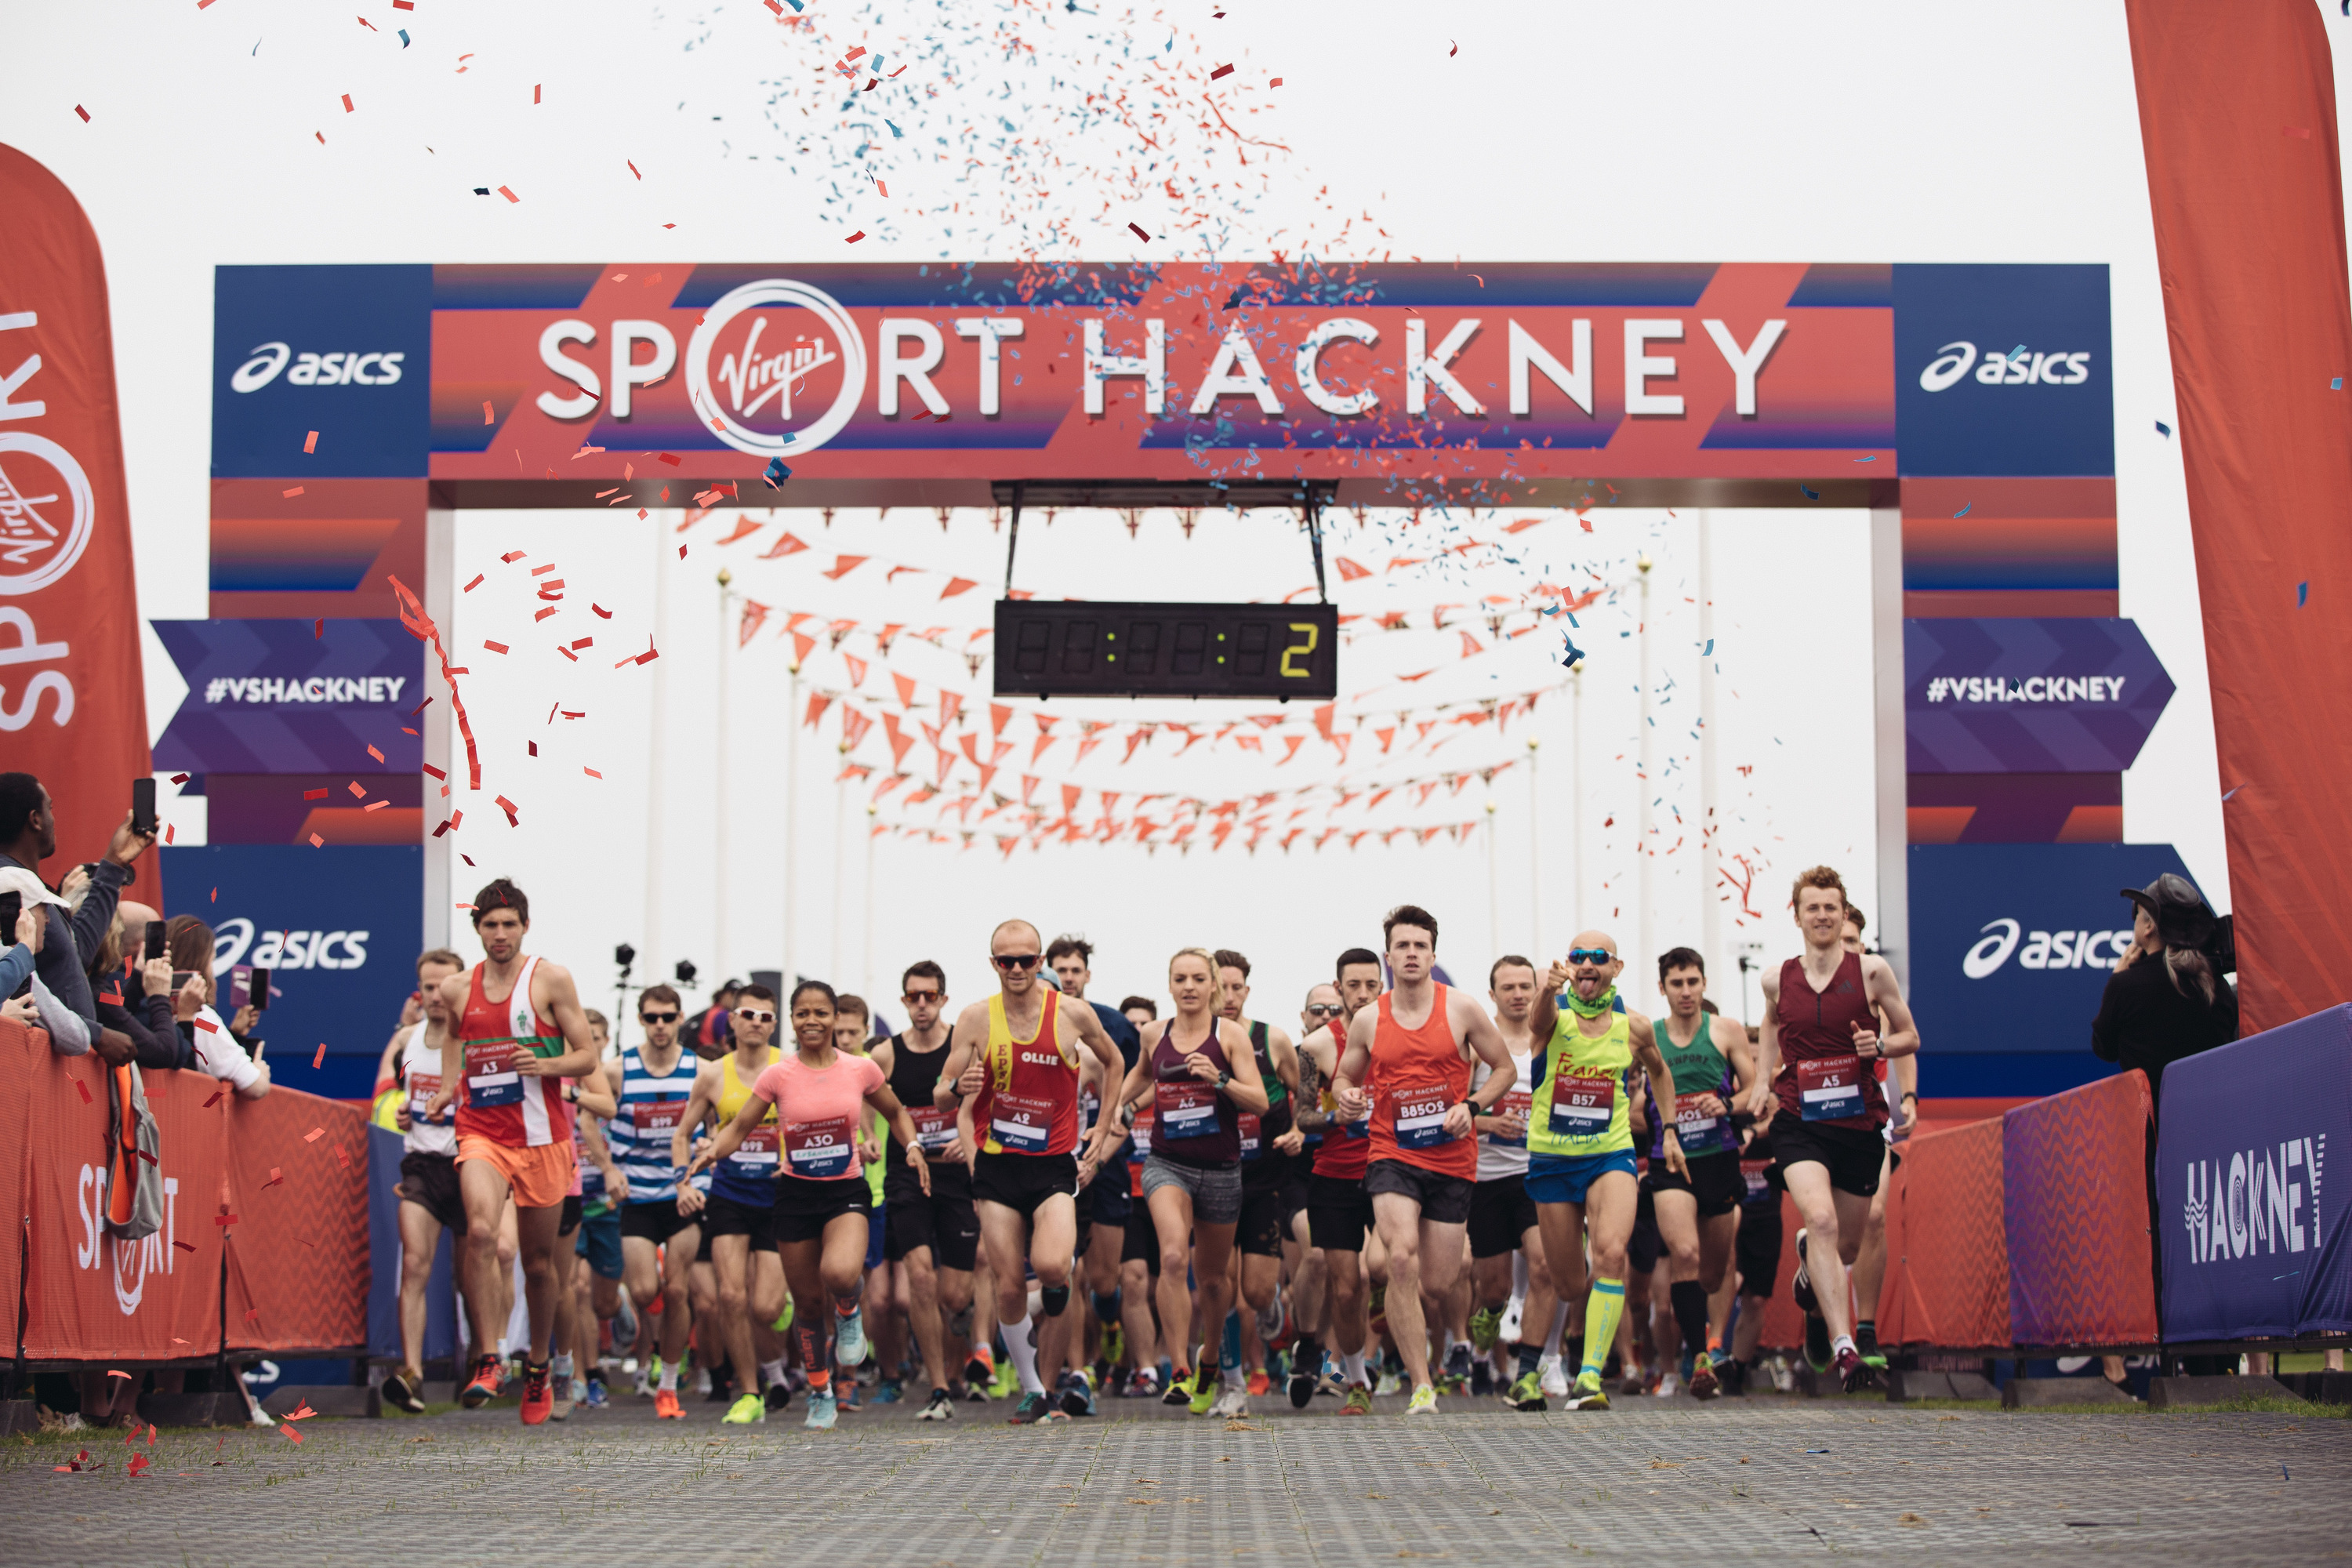 Runners at the Hackney Half marathon